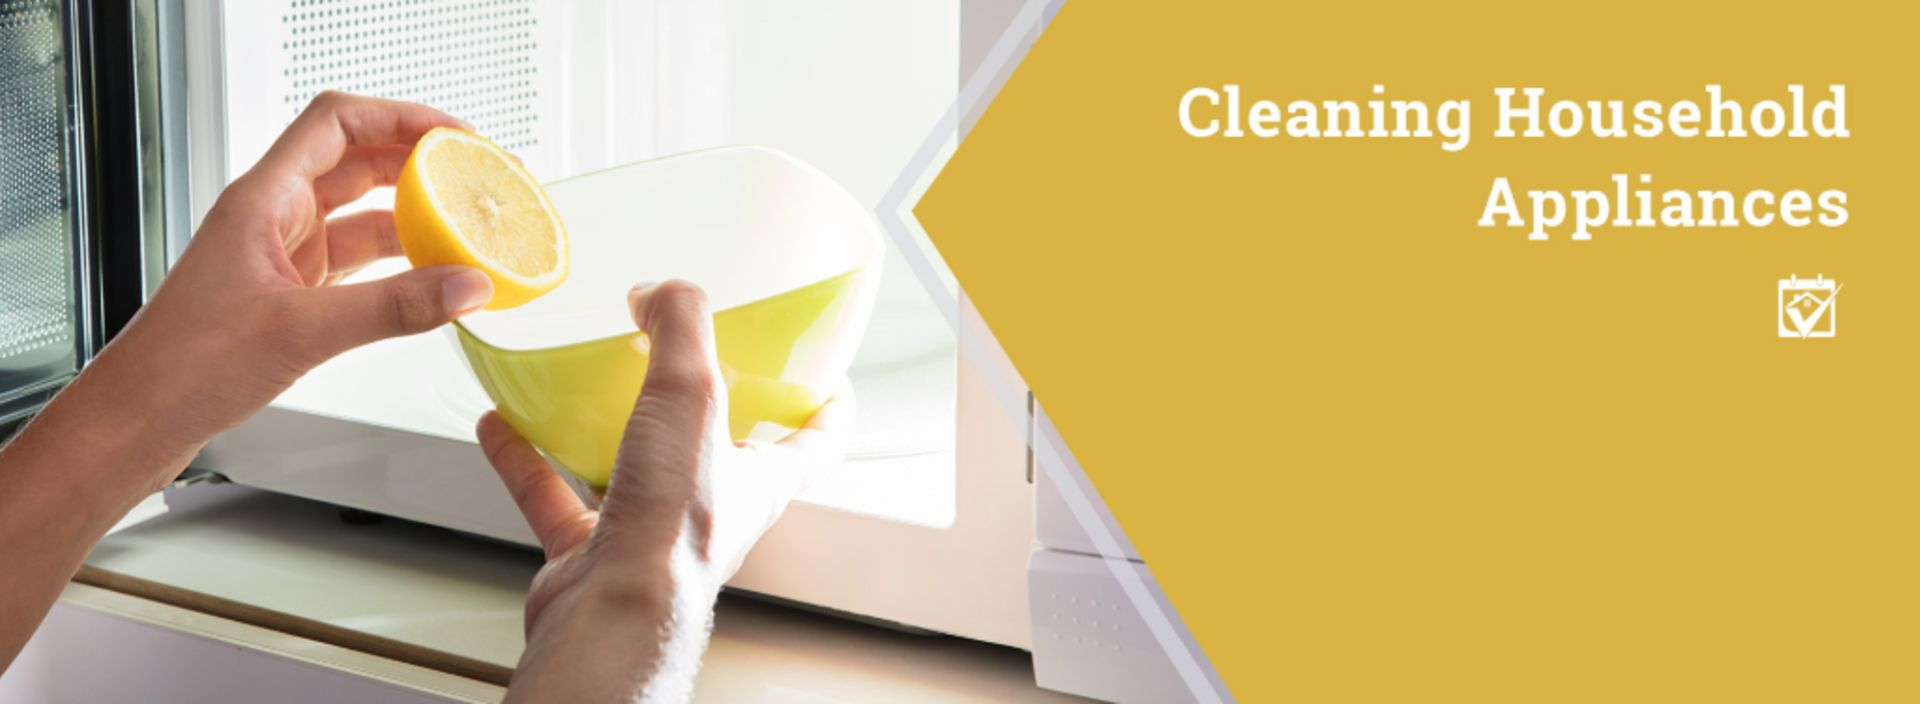 Tips on Cleaning Appliances